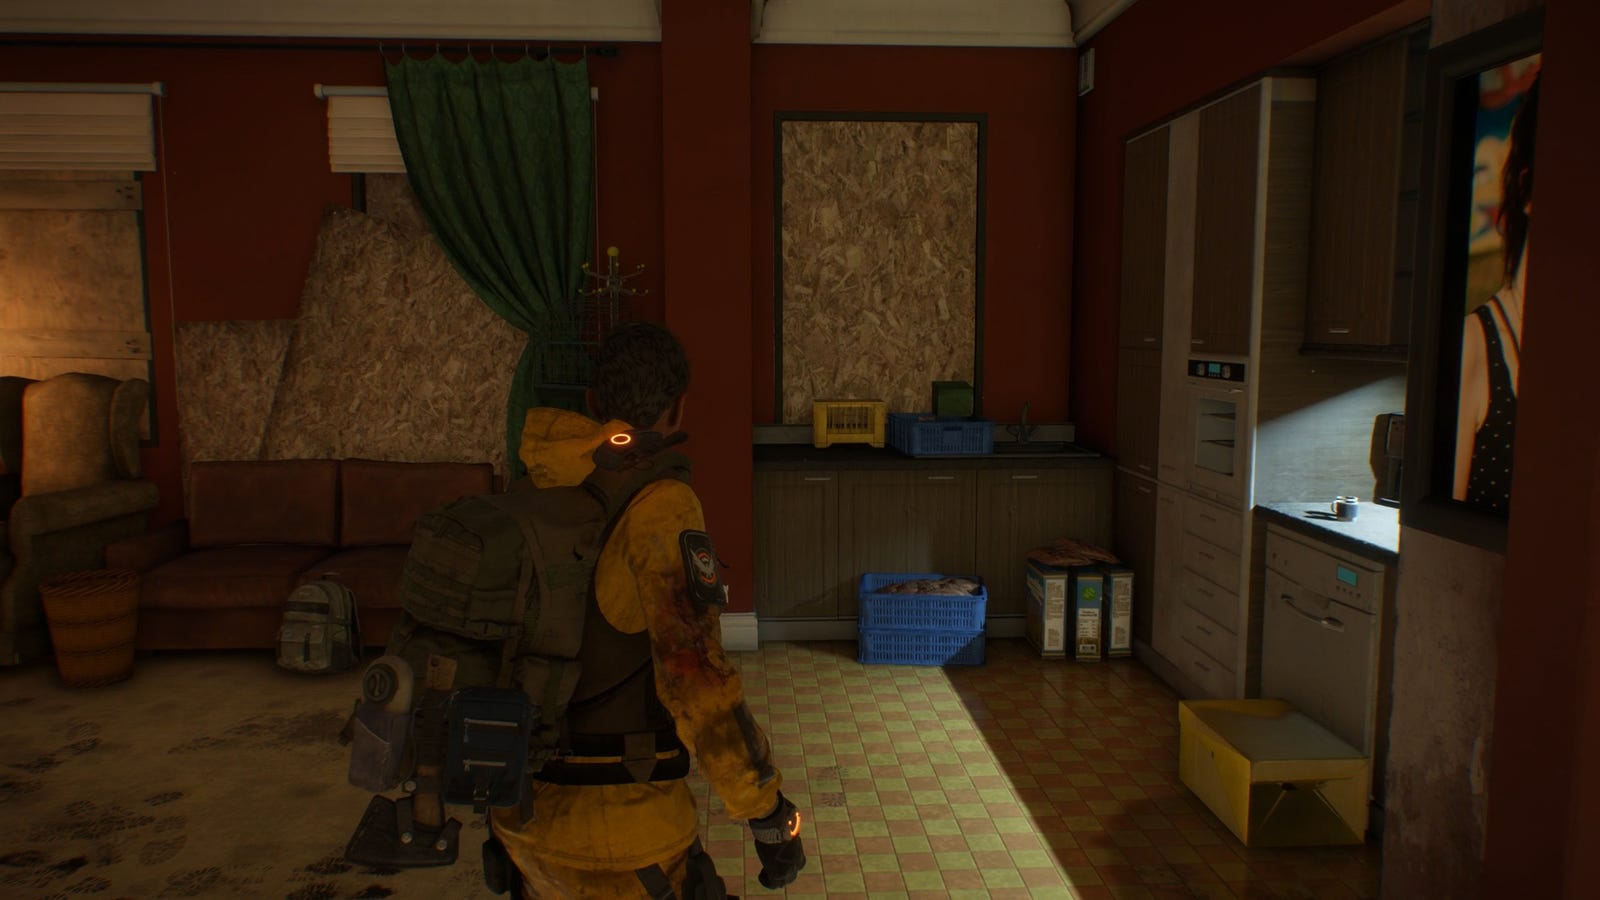 Starting off in The Division's Survival DLC with literally the clothes on my back and a pistol.